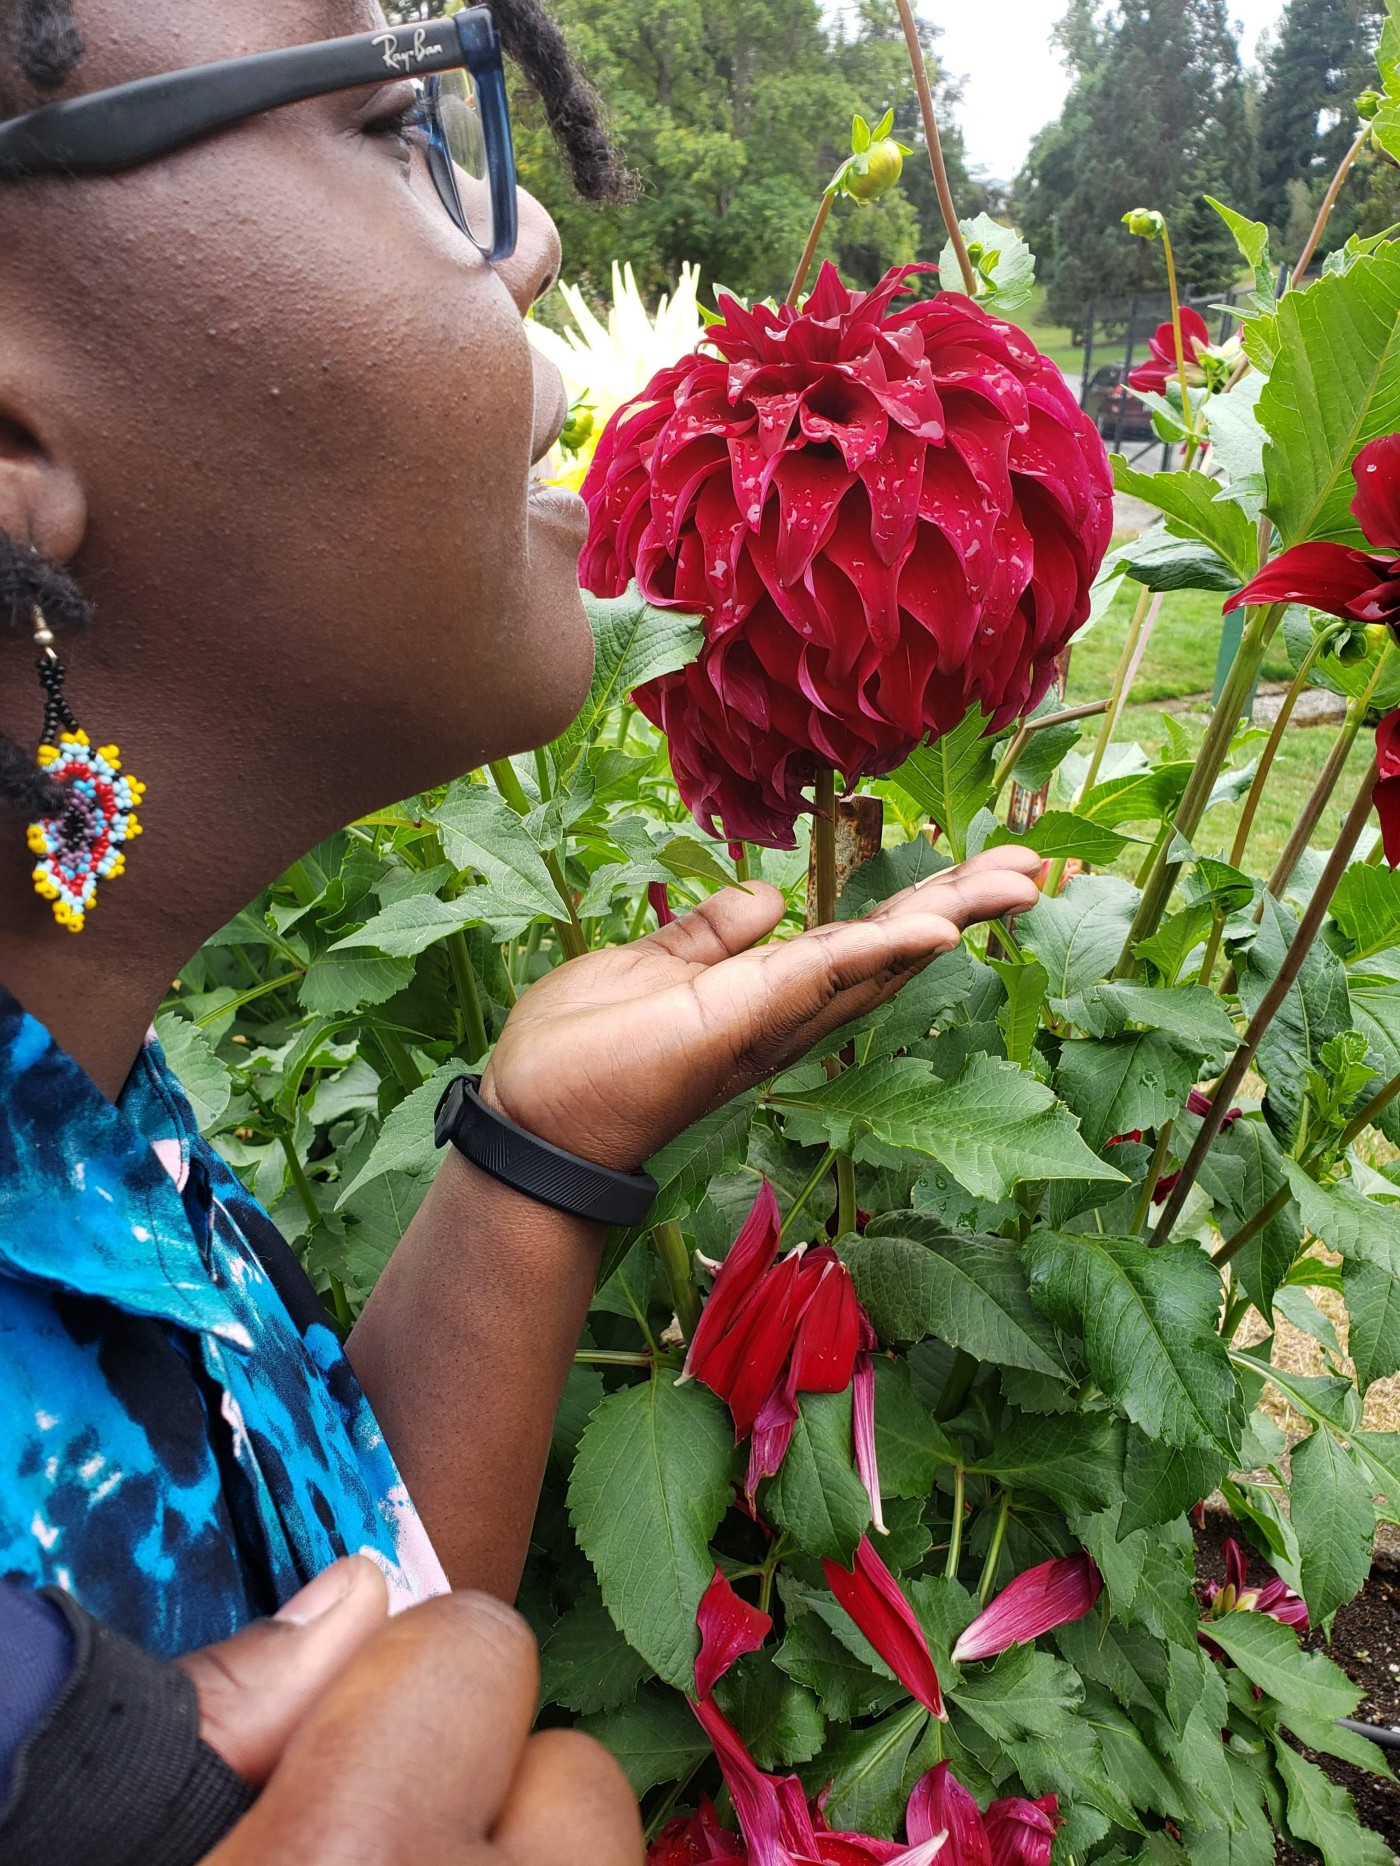 Author smelling a big red flower.